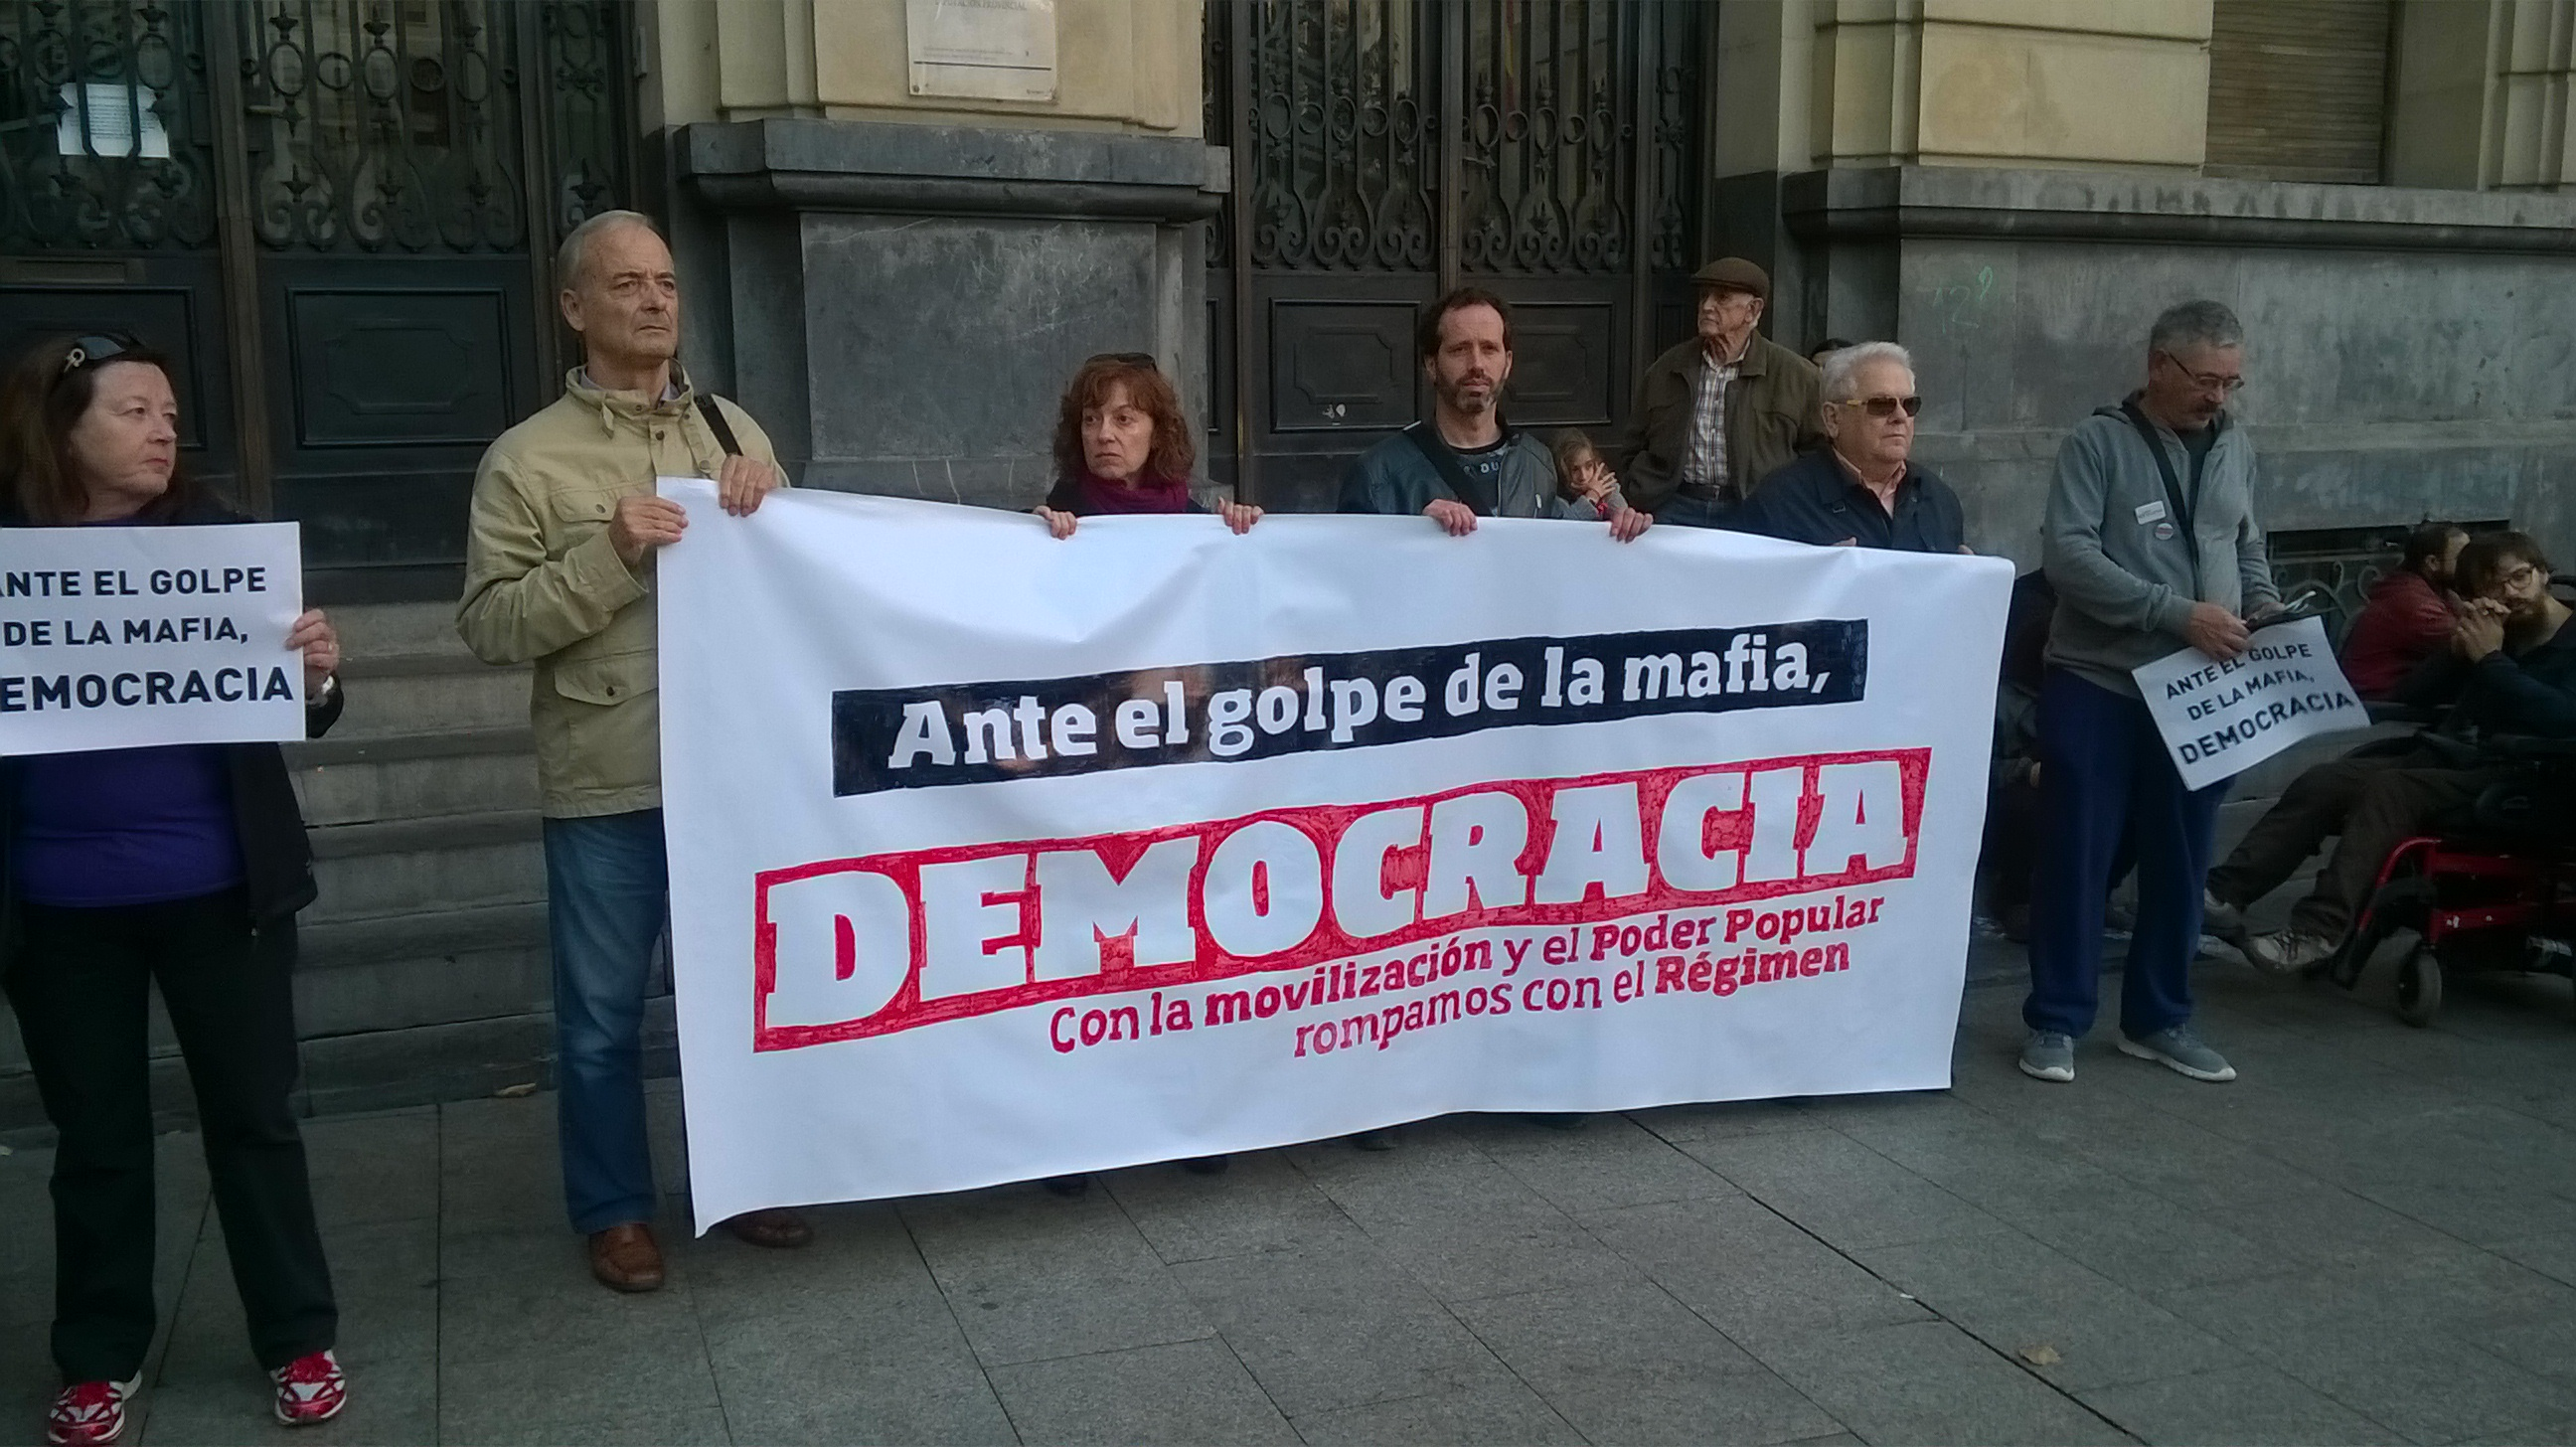 Fotos y video. Zaragoza concentración Mafia, Democracia. 29 de Octubre 2016